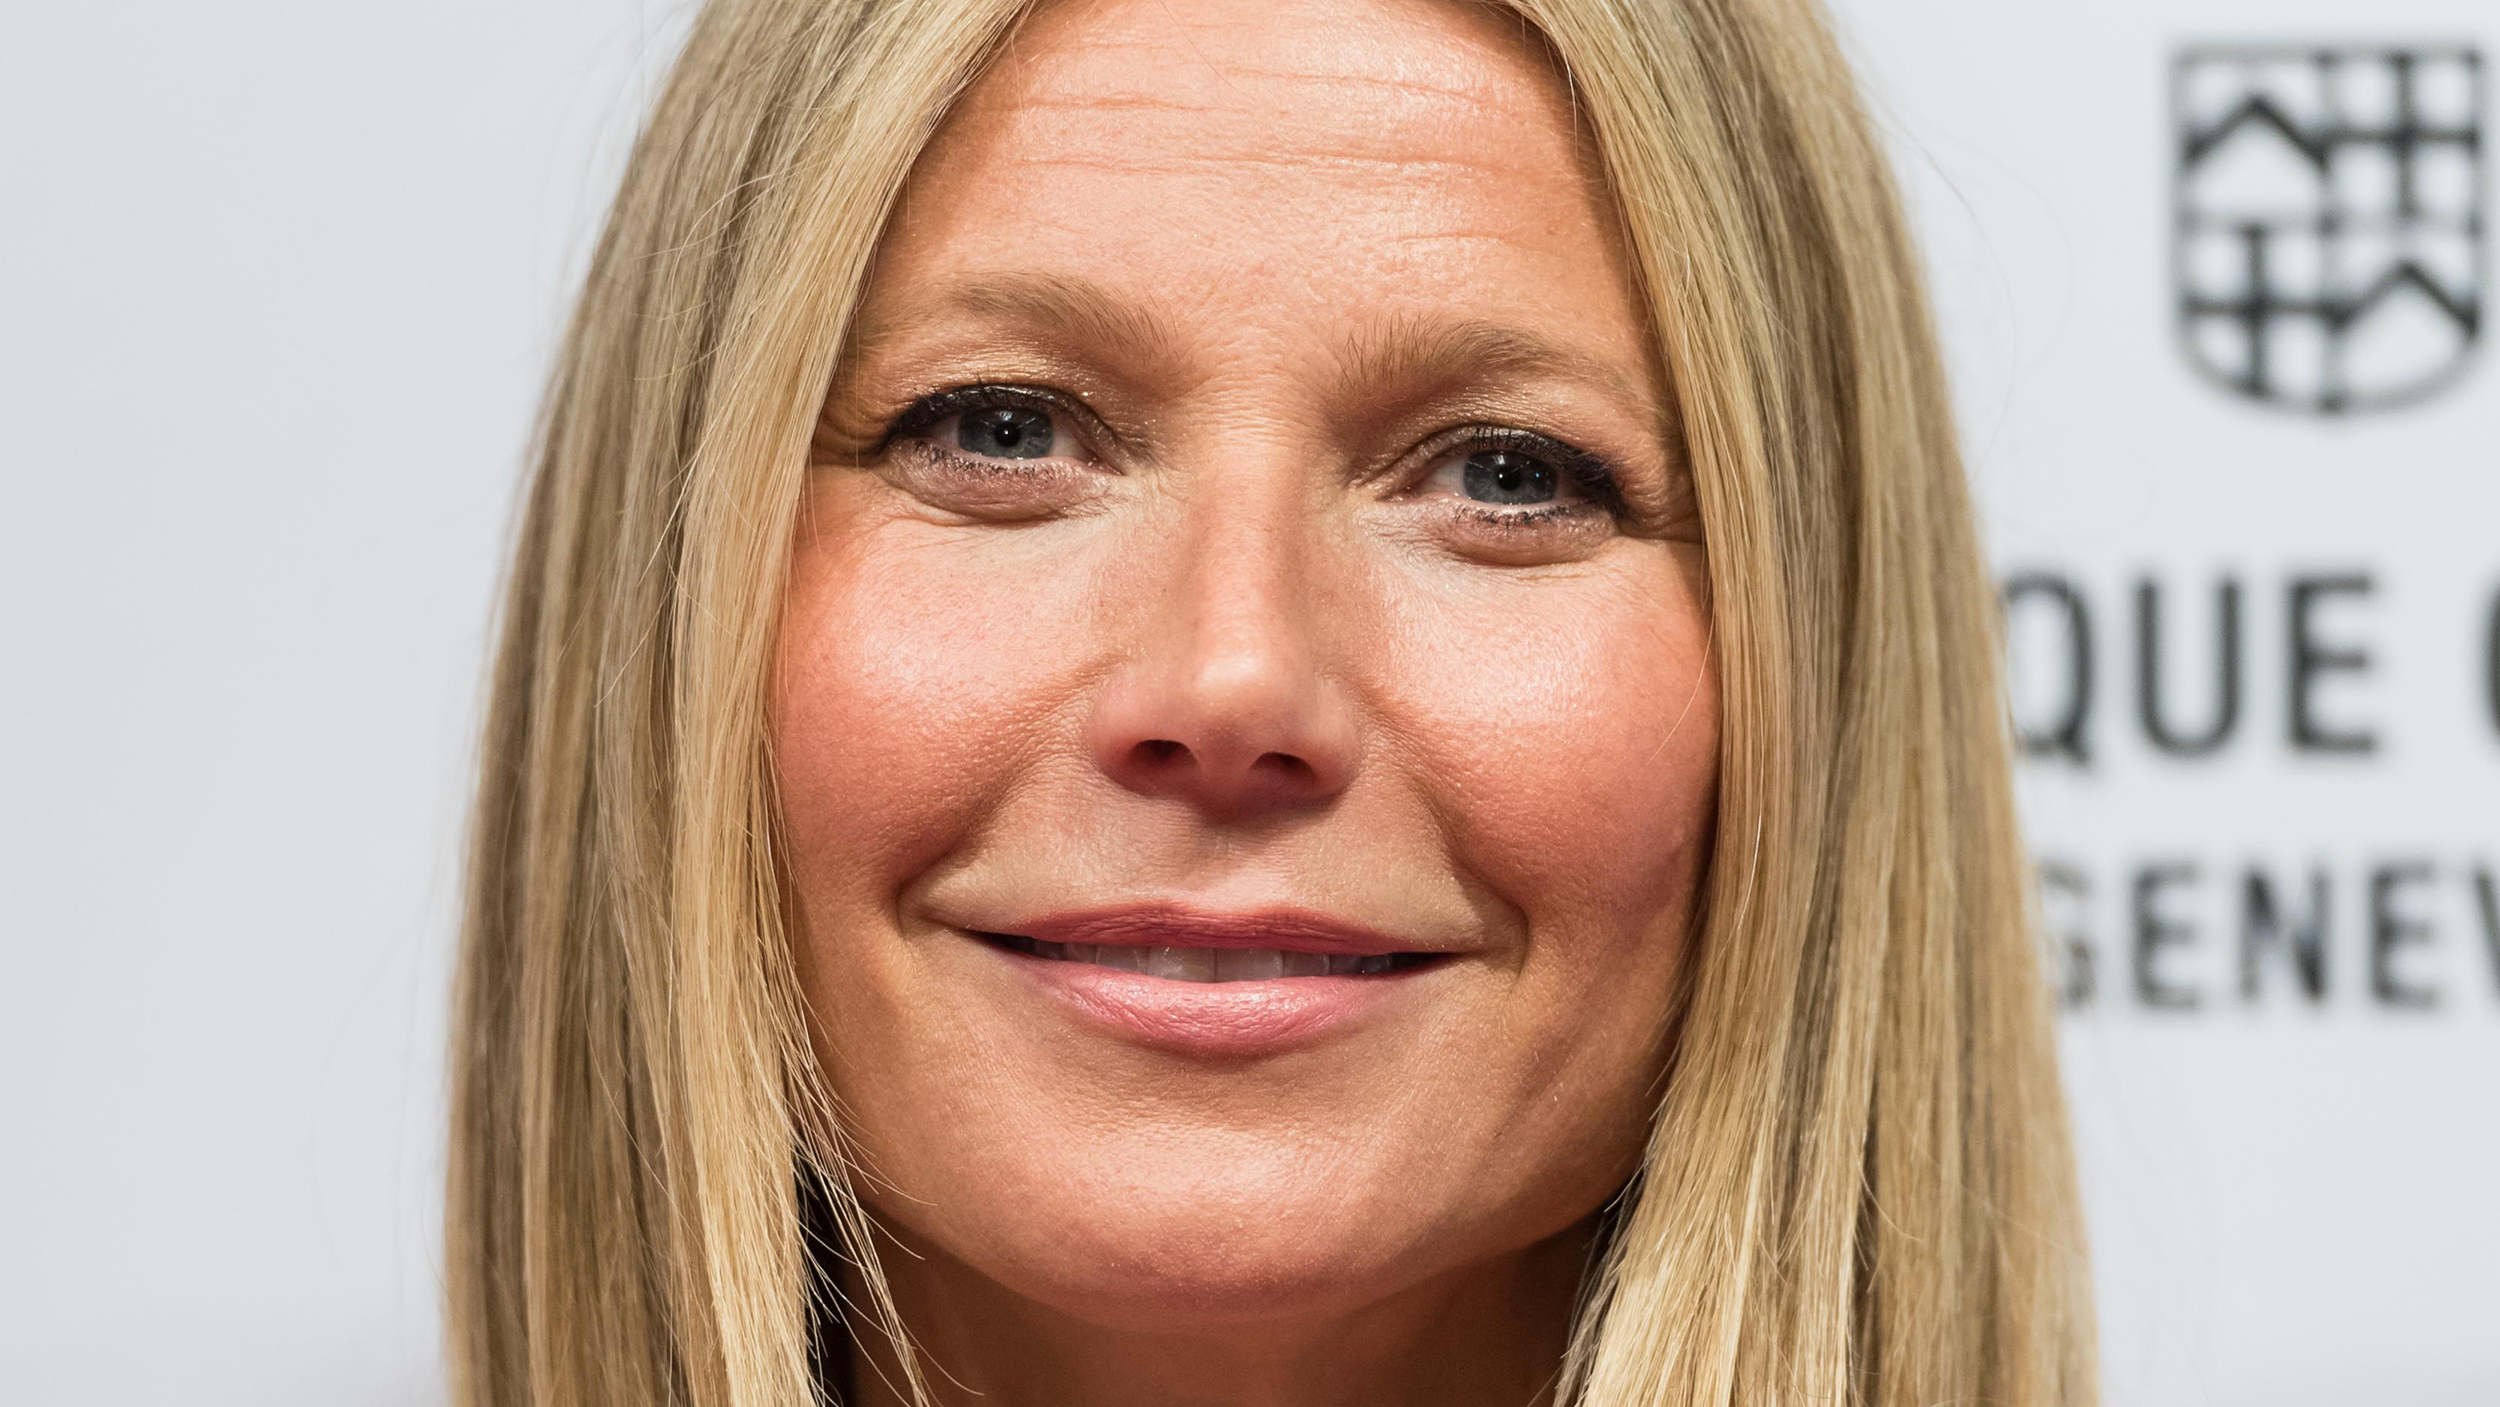 gwyneth-paltrow-today-180725-tease-02_24d6a7cacf4ad0aa56a52626bc68b5e4.jpg